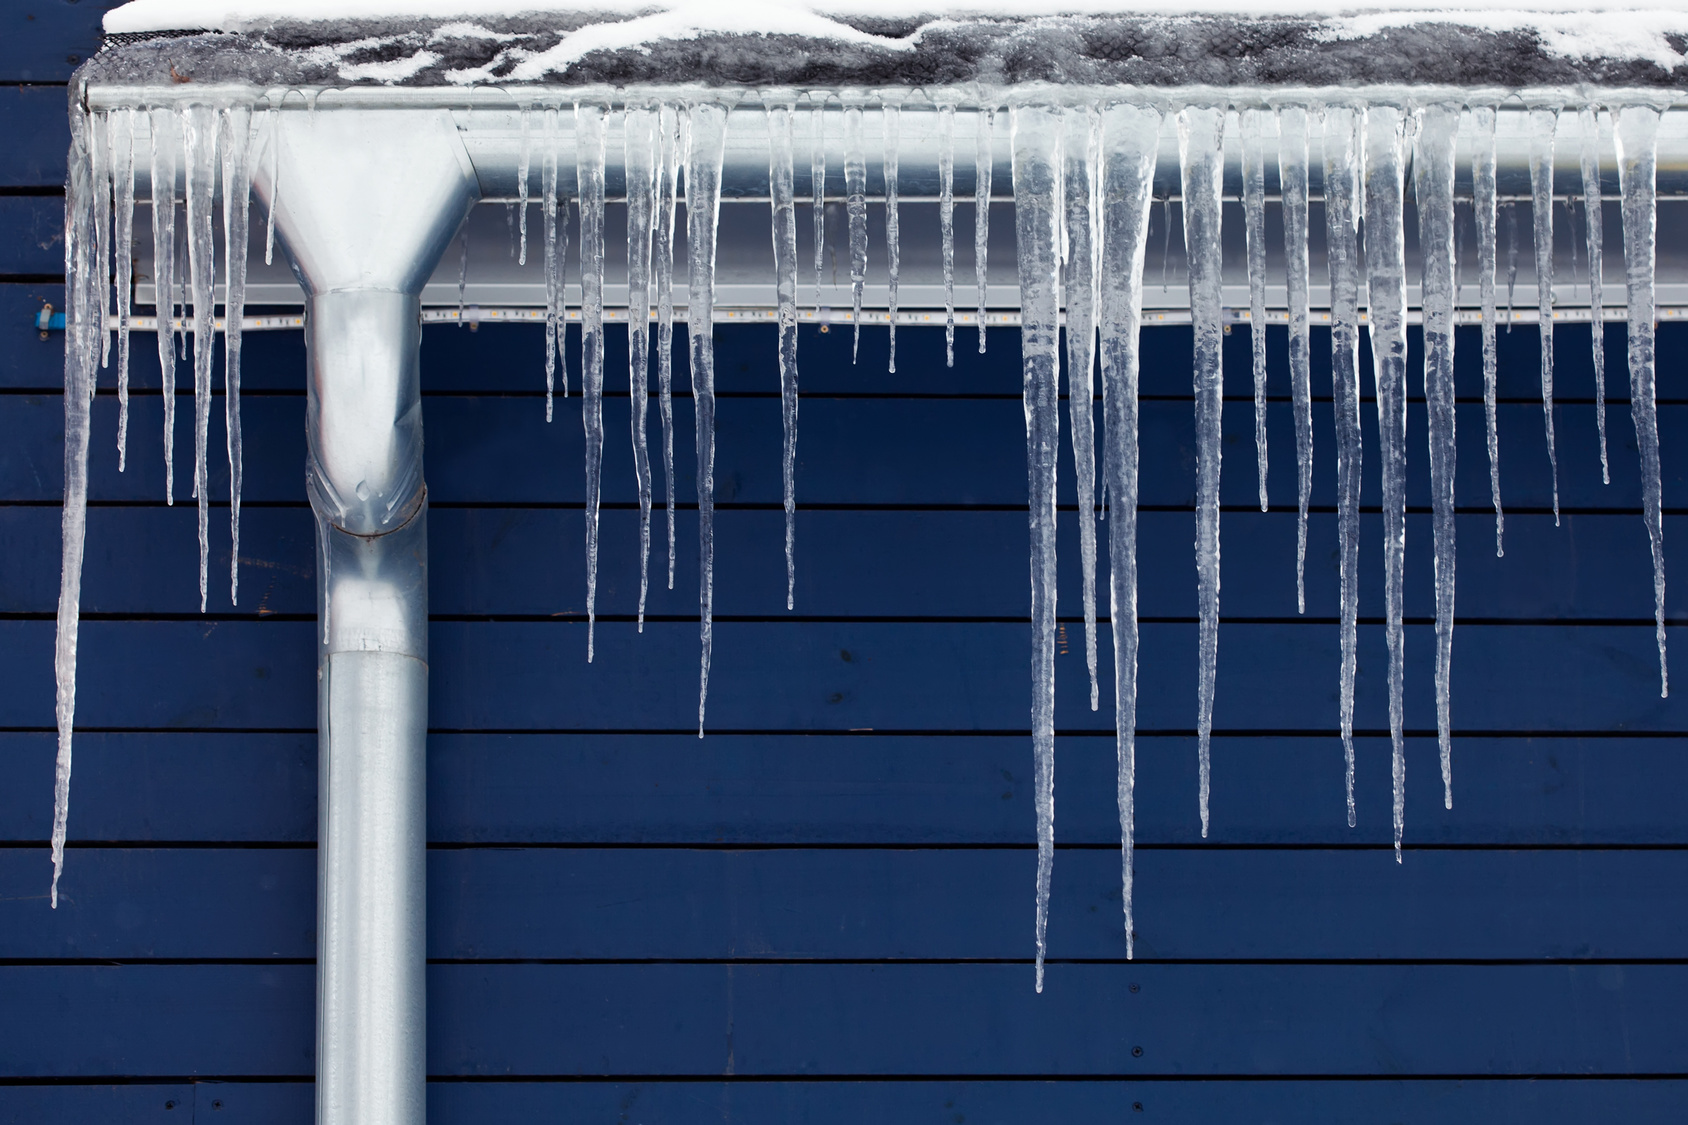 Icicles on the roof. Winter concept. downspout. Blue wooden background.